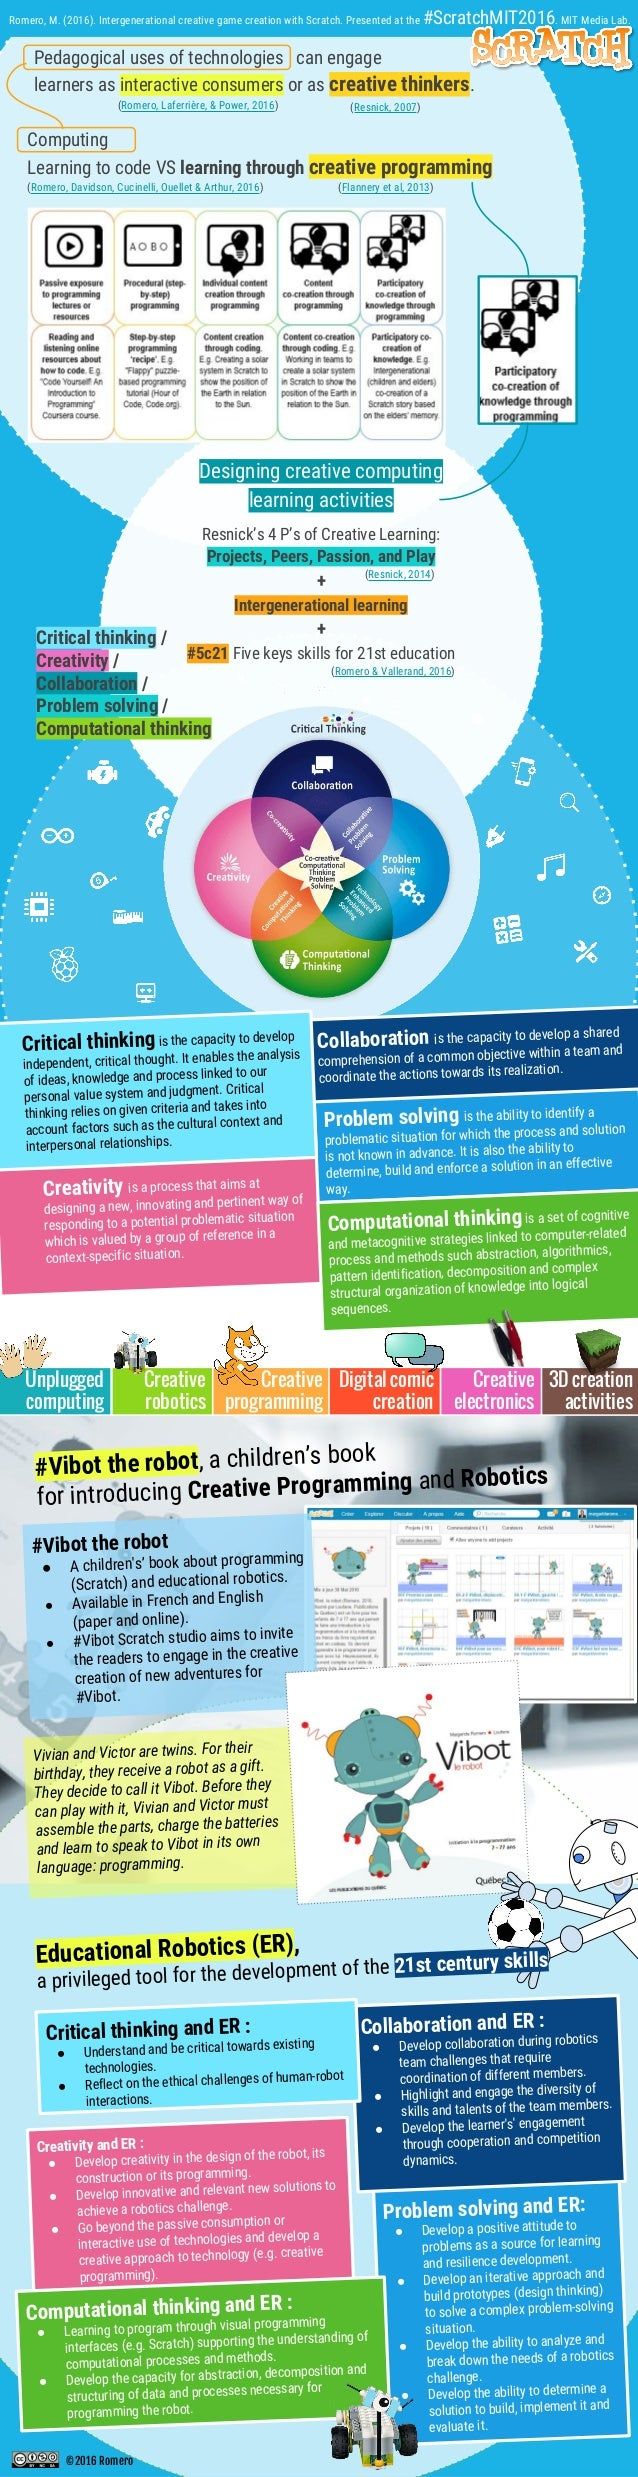 ©2016 Romero Pedagogical uses of technologies can engage learners as interactive consumers or as creative thinkers. (Romer...